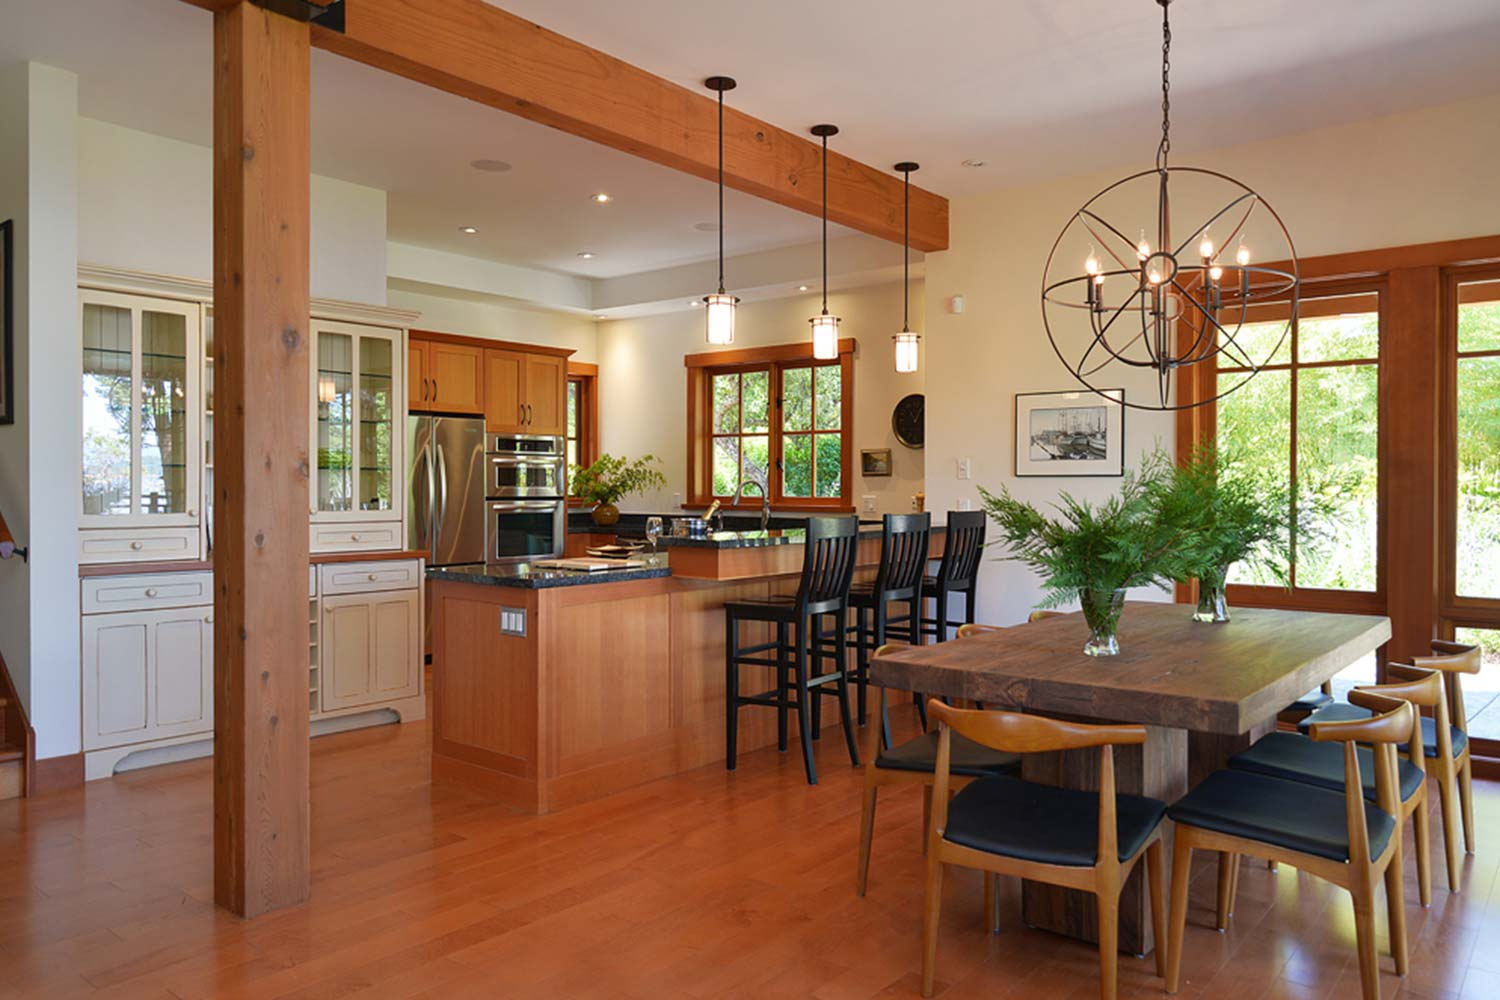 The kitchen and dining area of House 65, a luxury furnished rental house in Pender Harbour on the Sunshine Coast.